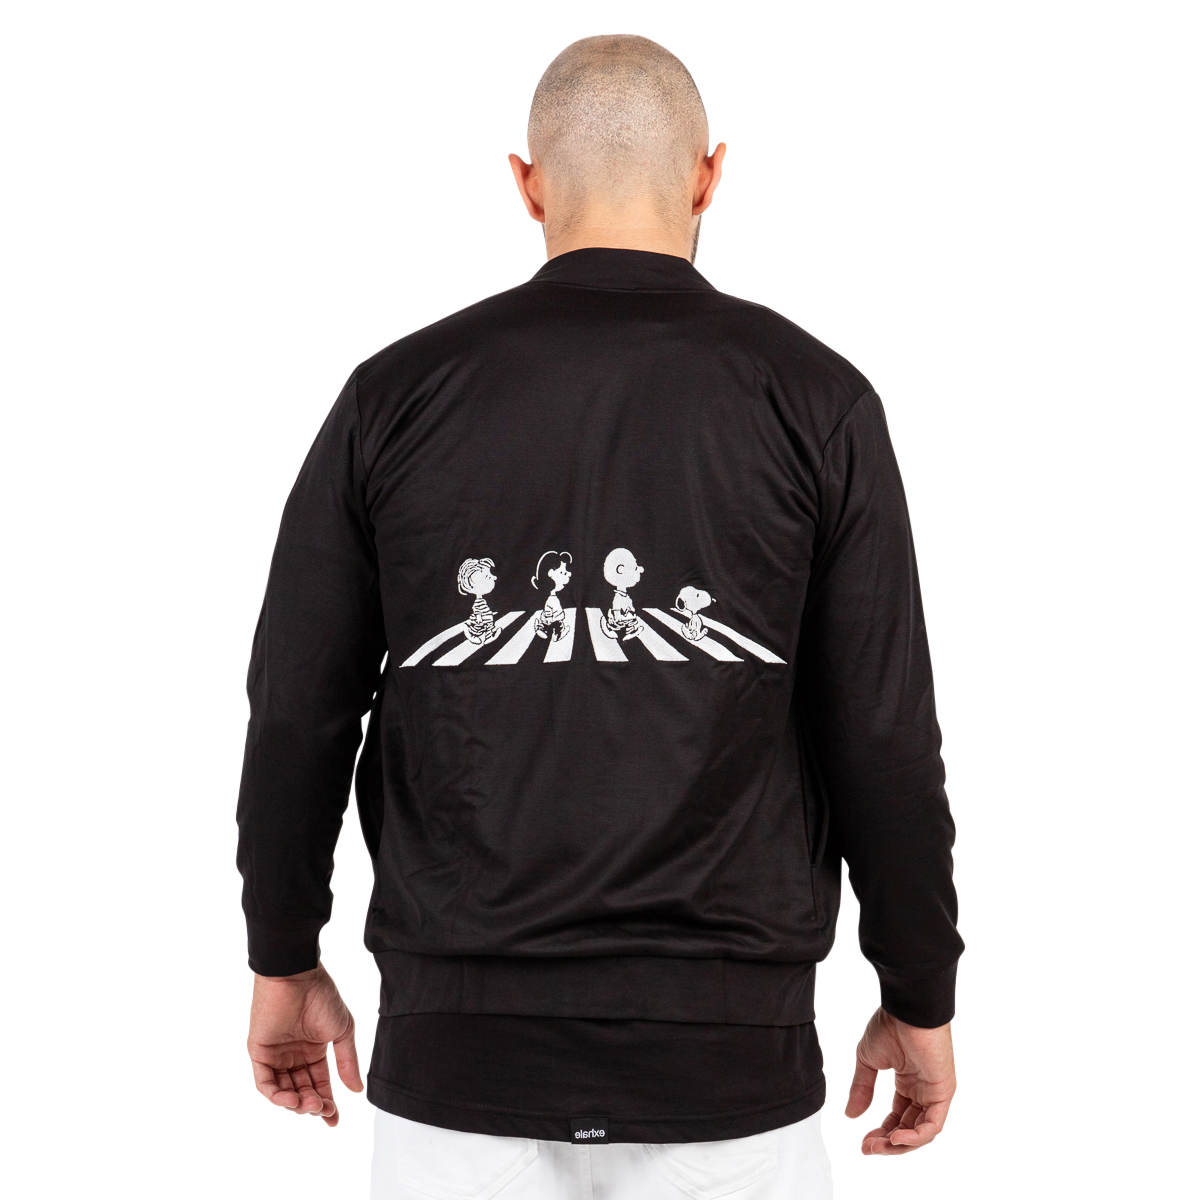 snoopy & friends bomber jacket // men